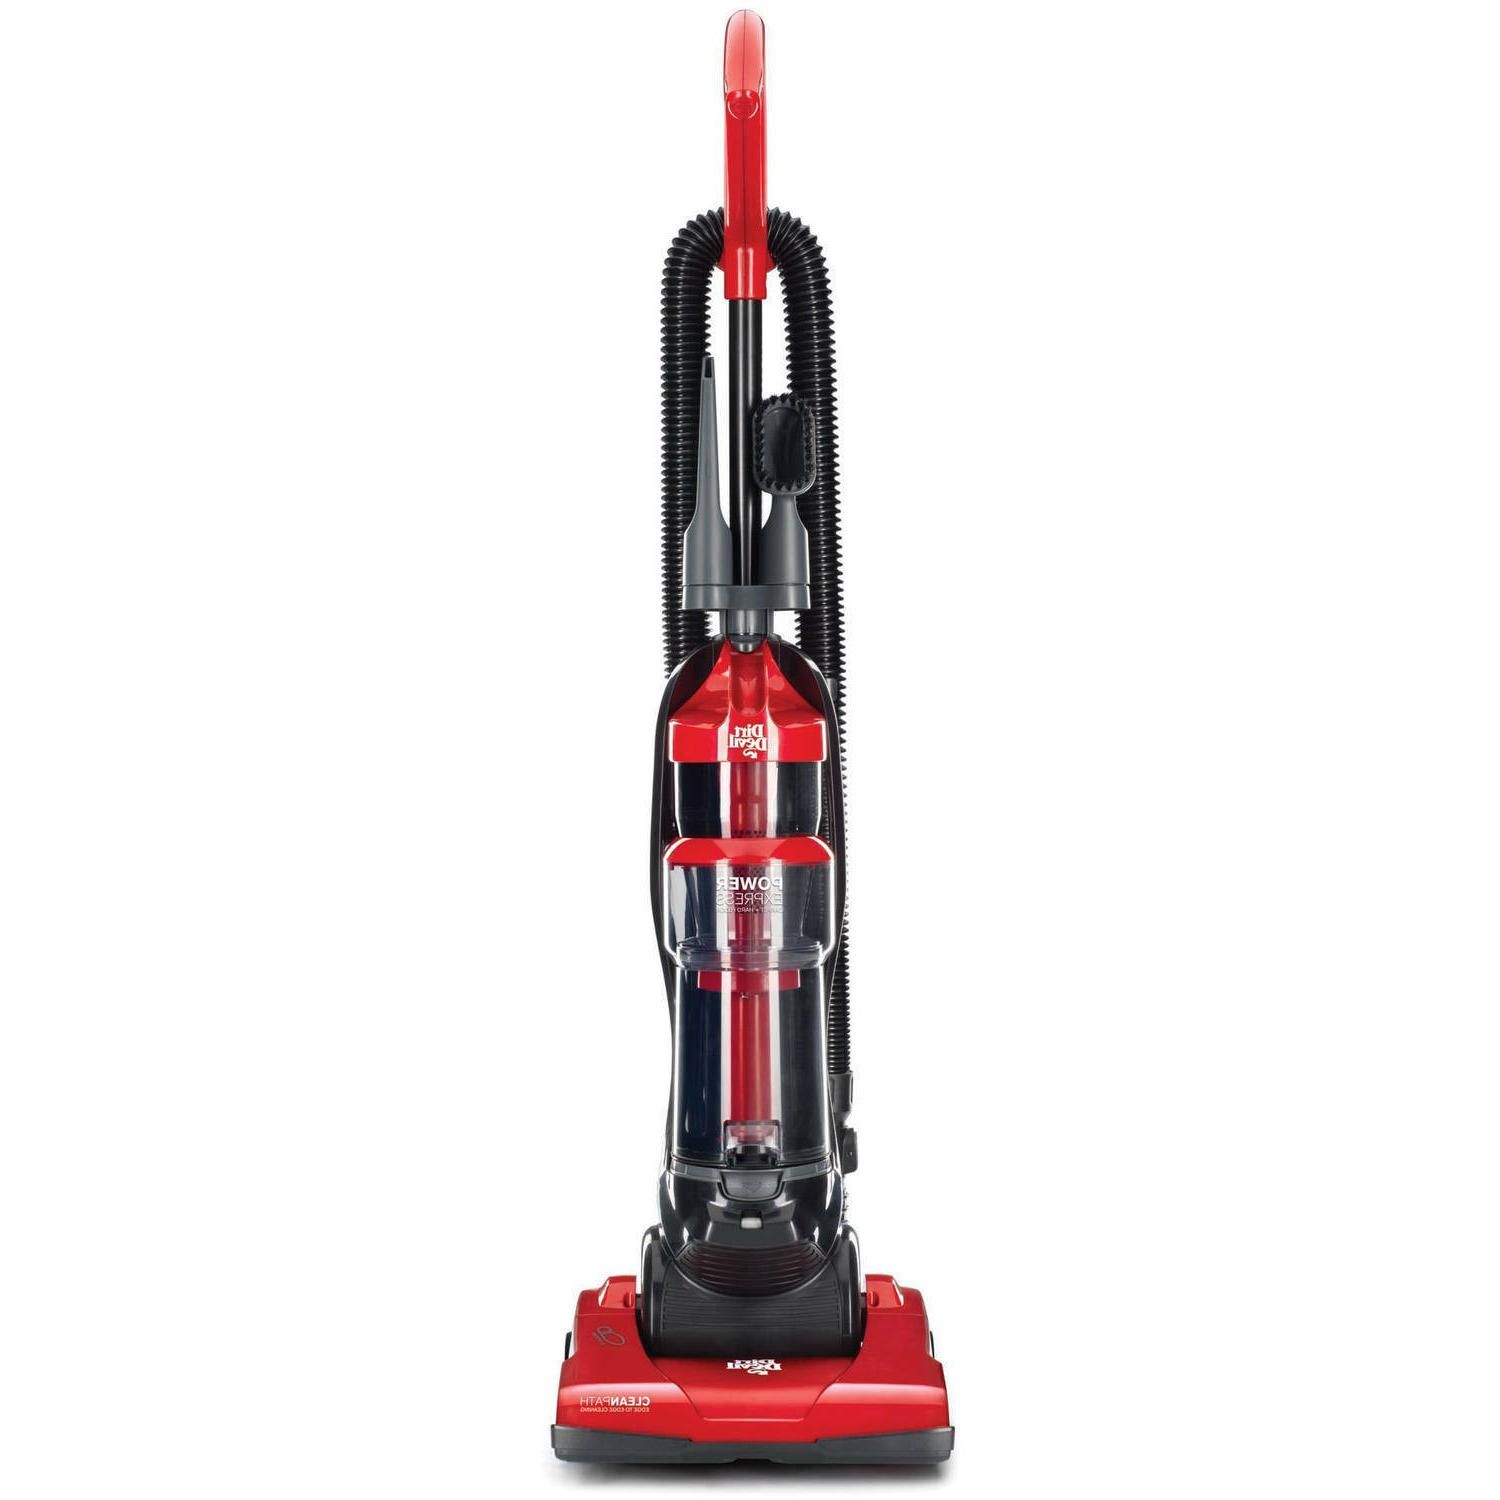 Upright Bagless Vacuum Floor Care Lightweight Home Cleaner H